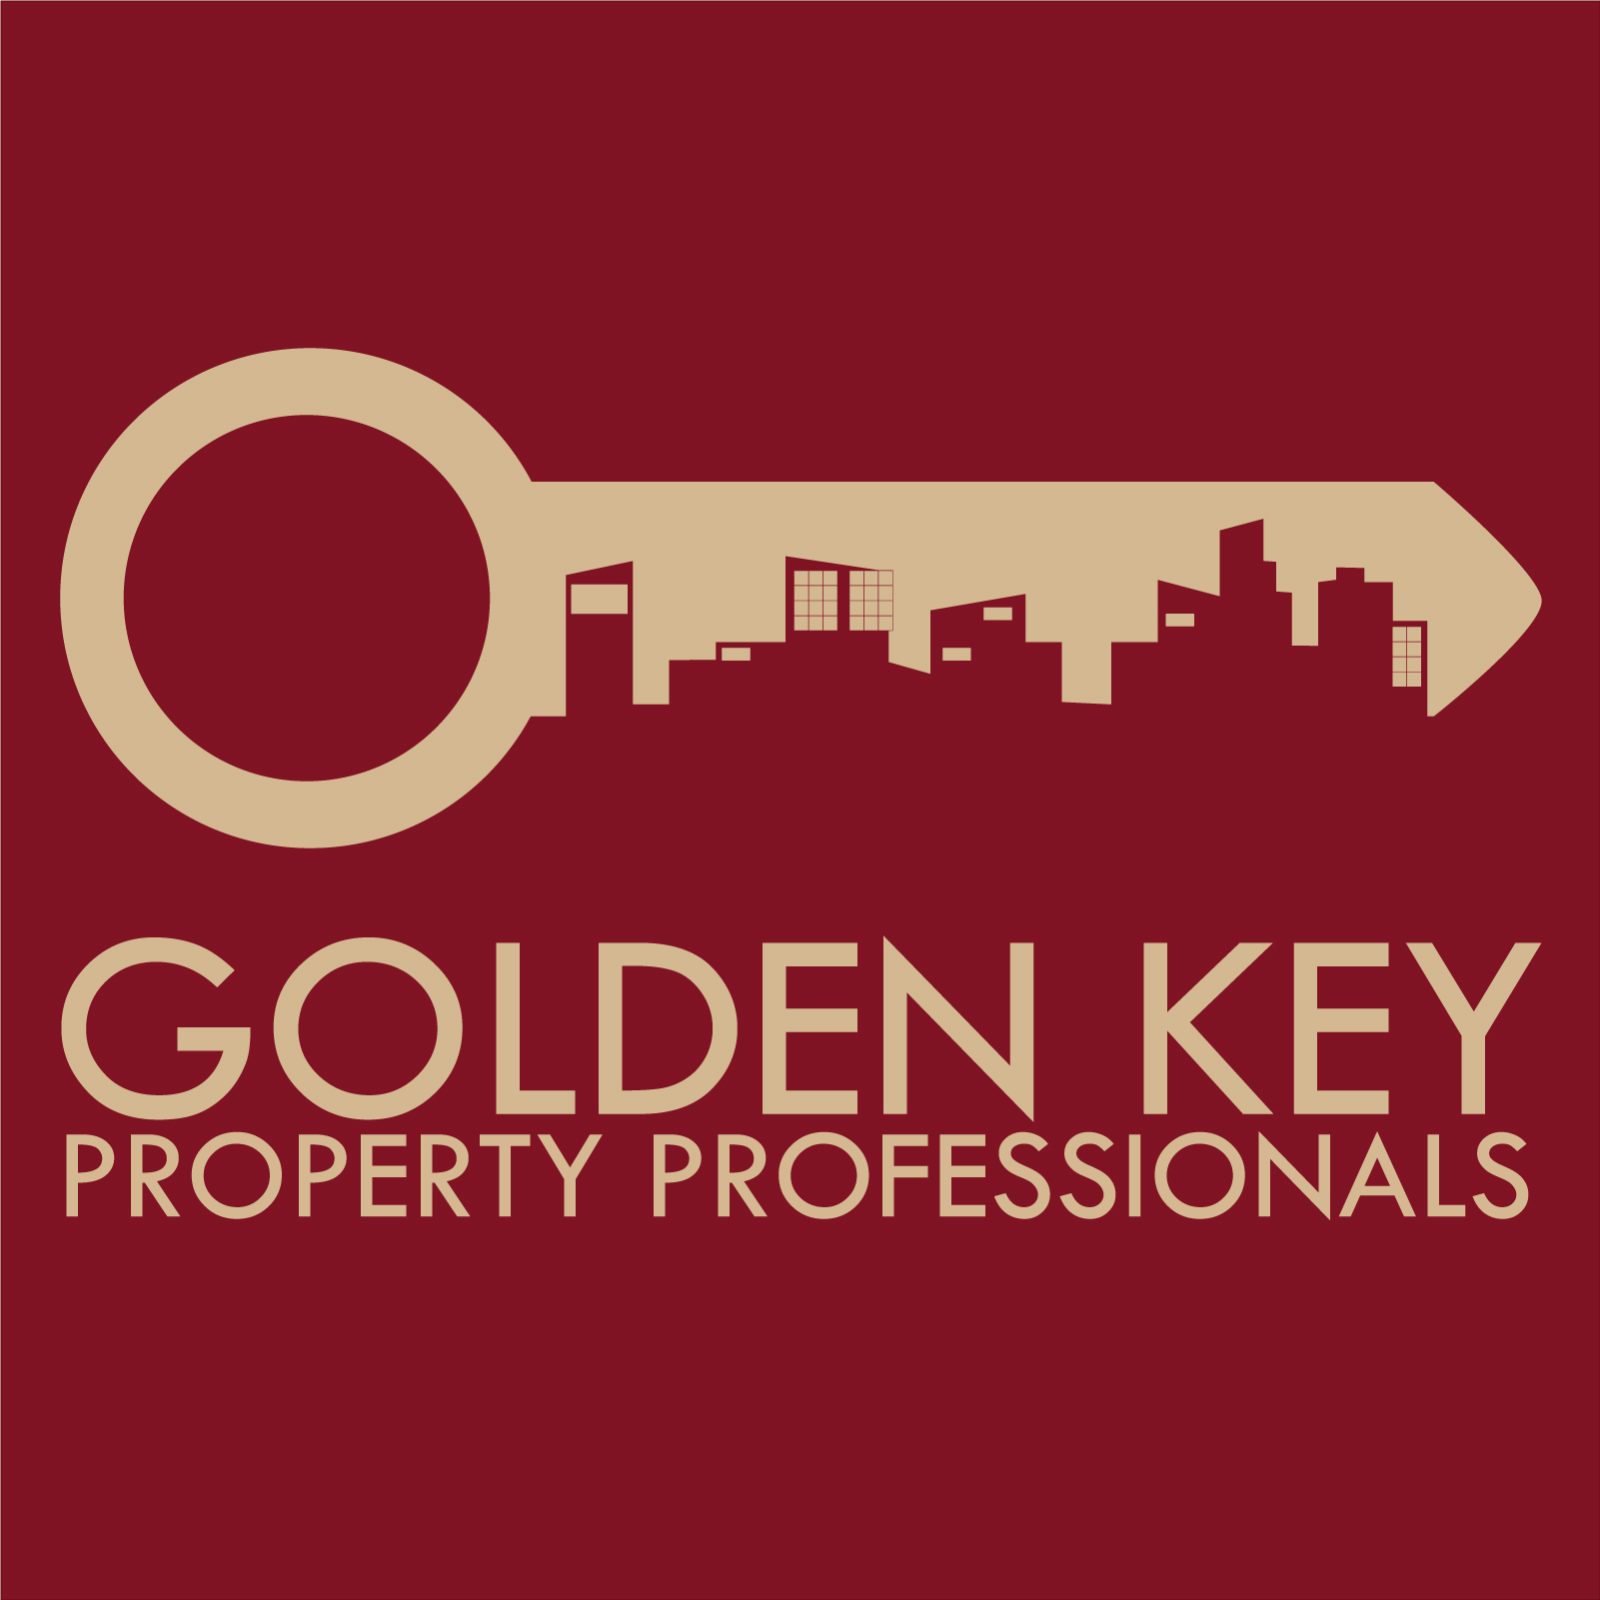 Golden Key Property